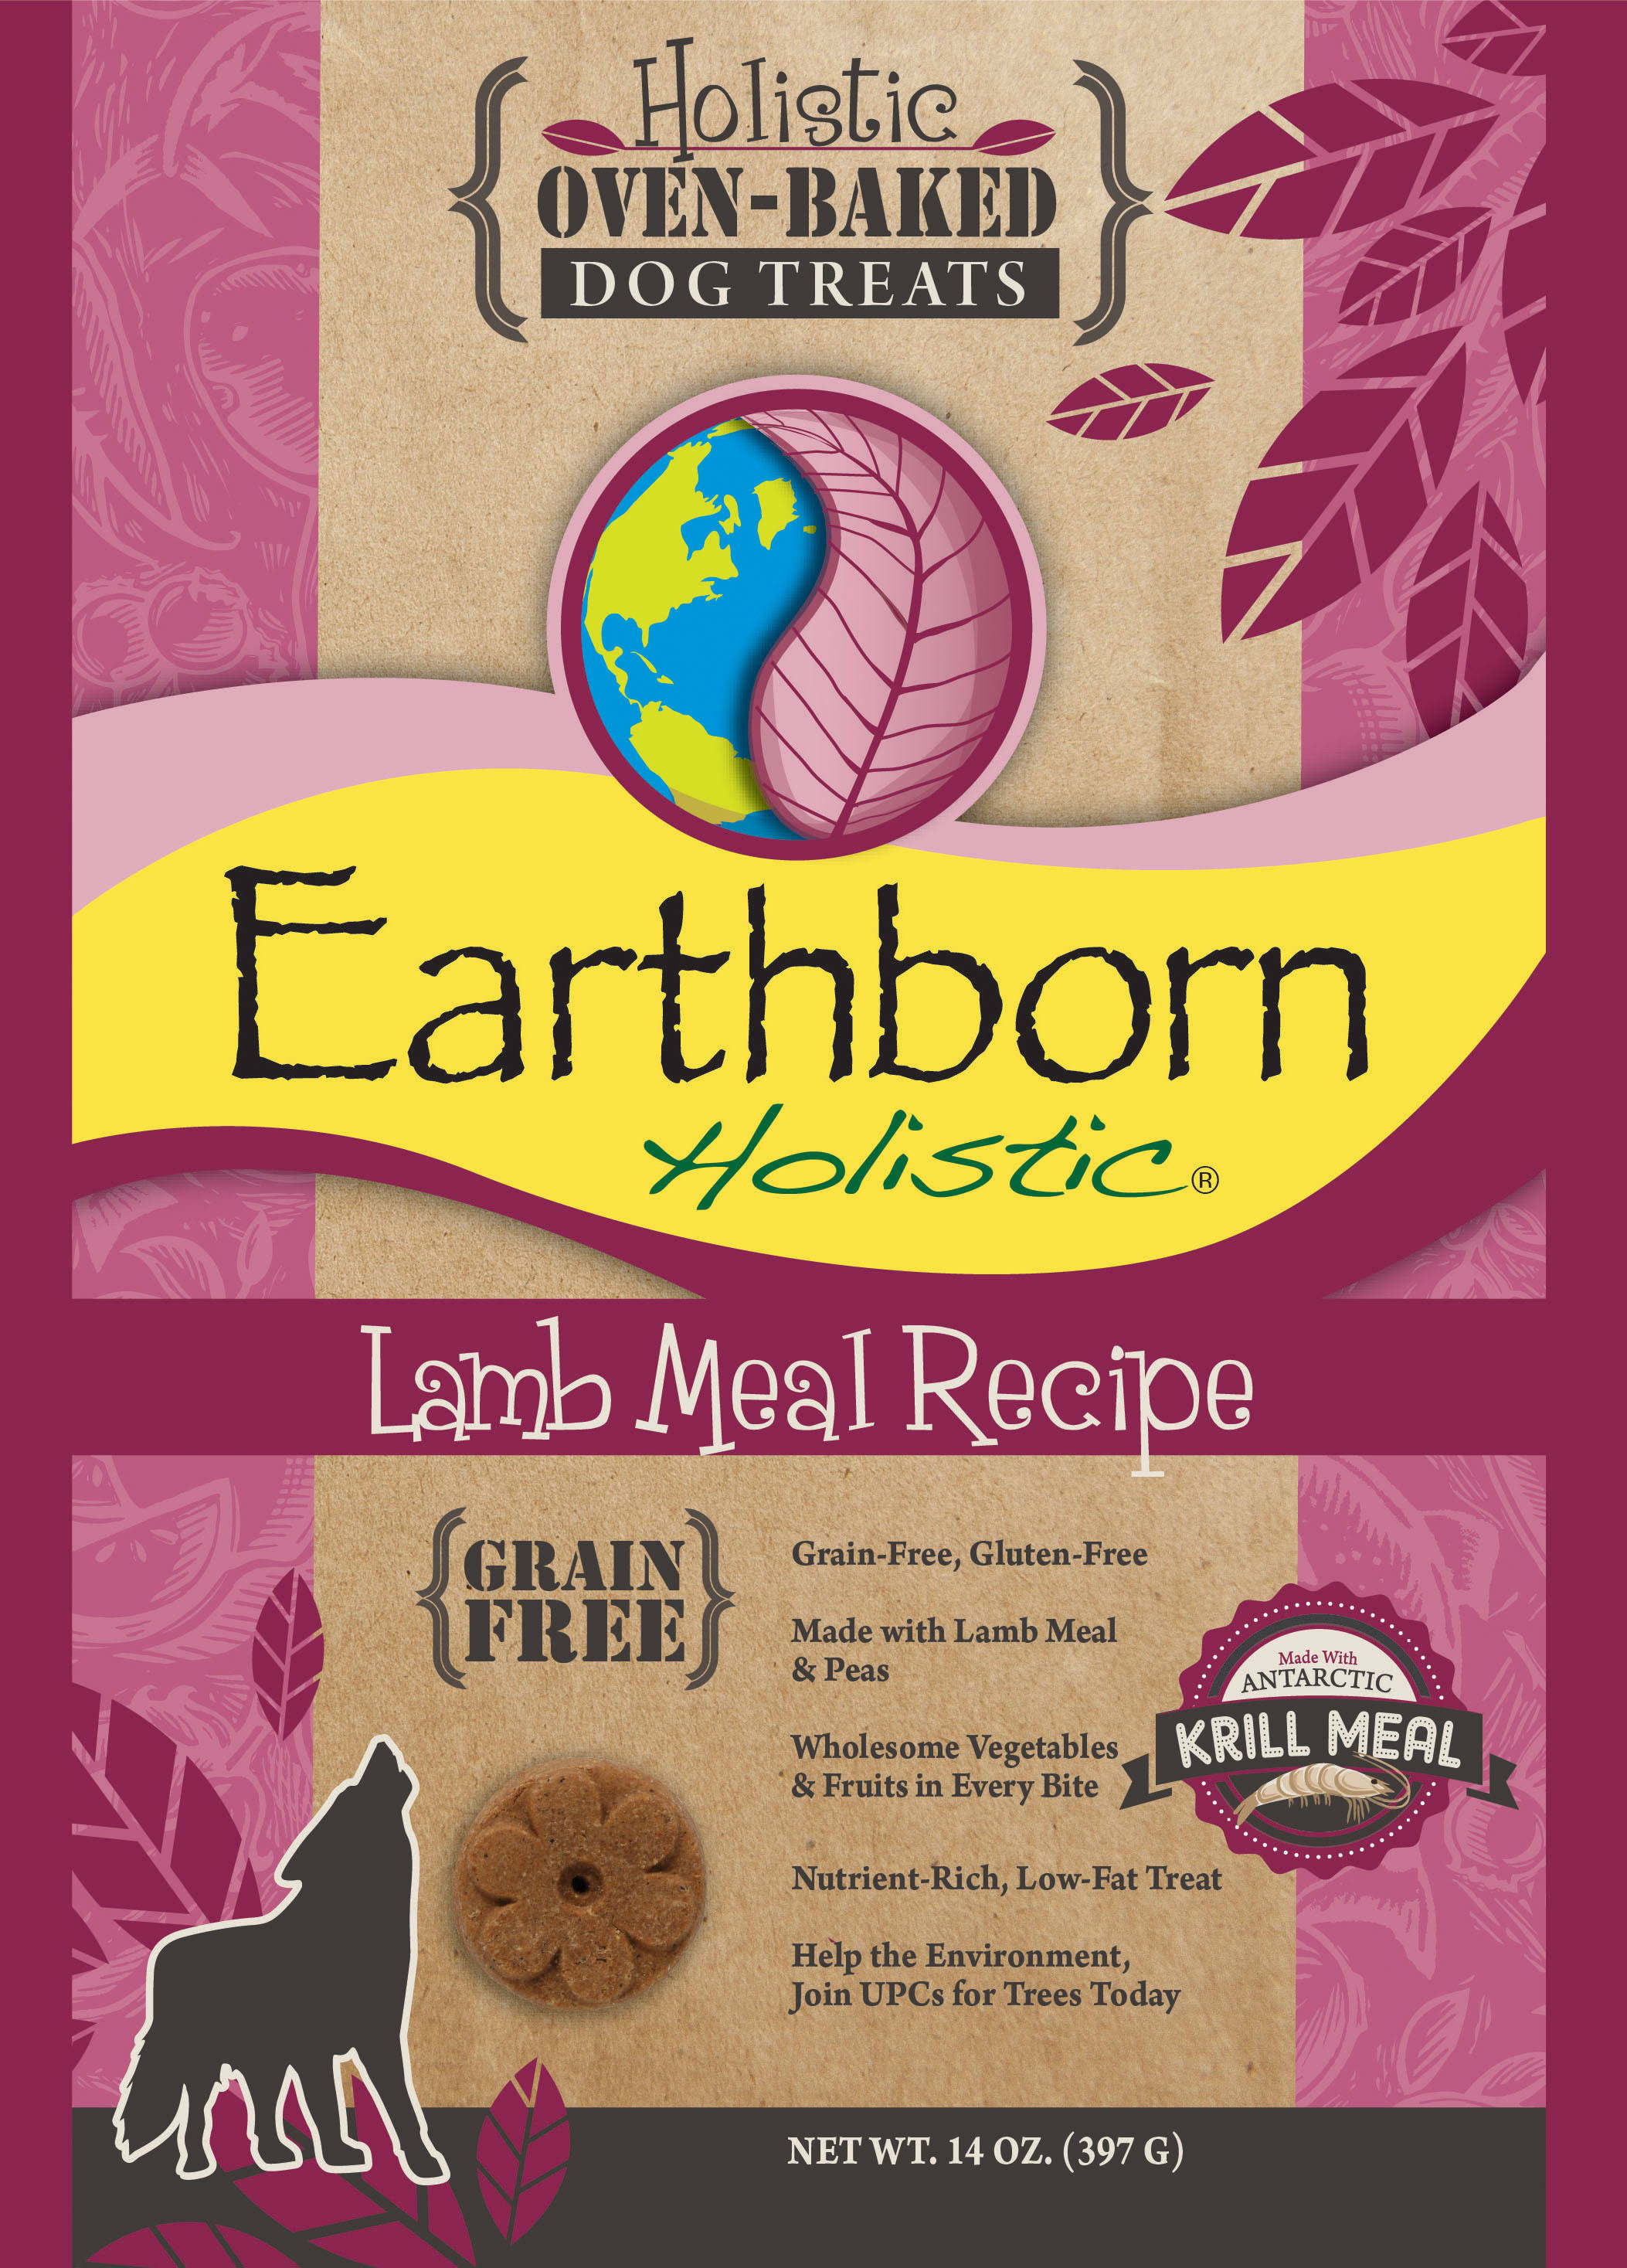 Earthborn Holistic Grain Free Oven Baked Biscuits Lamb Meal Recipe Dog Treats - 14 oz